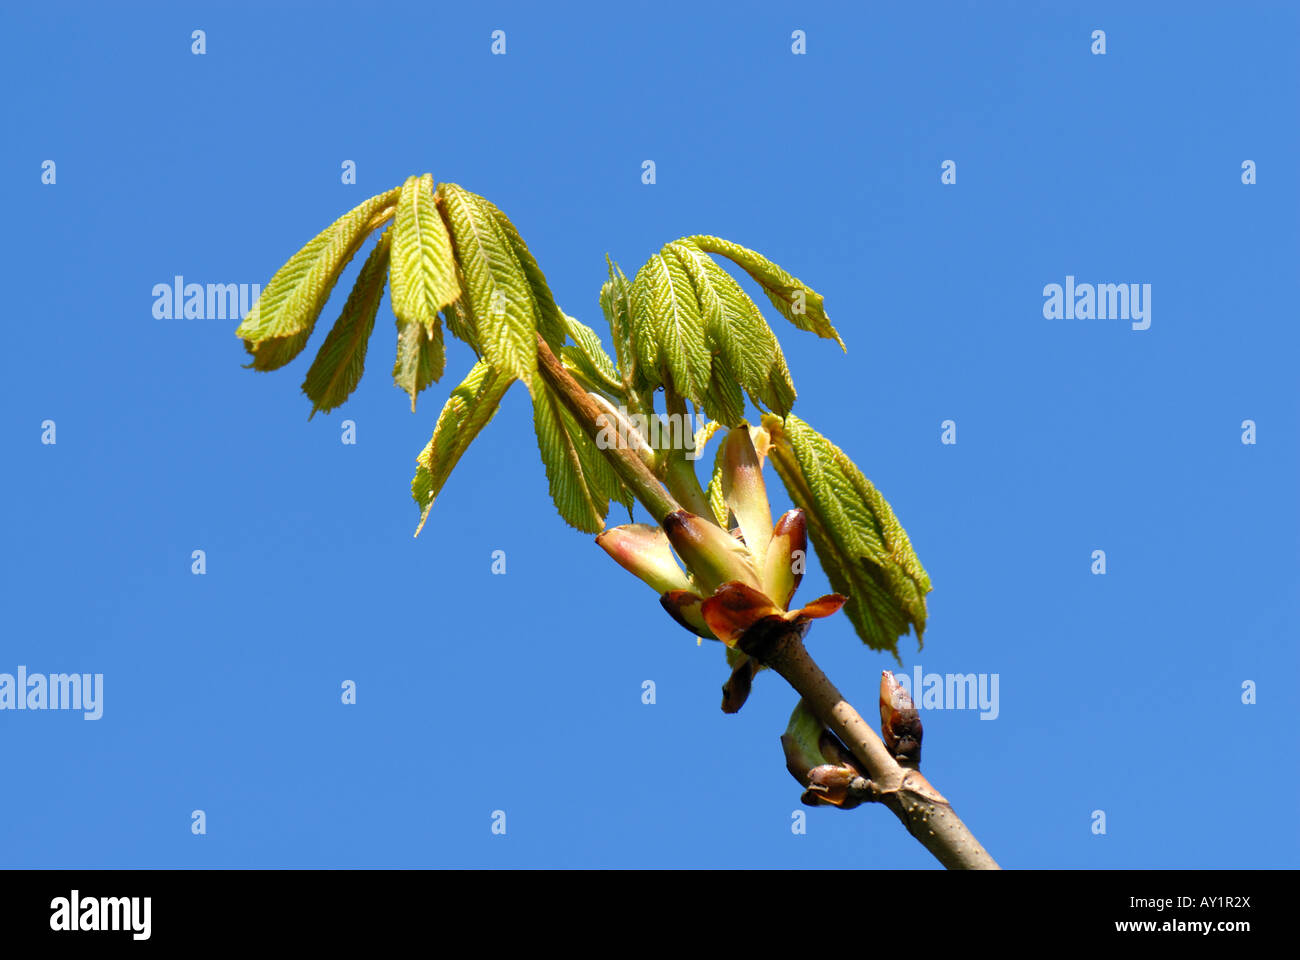 Horse chestnut Aesculus hippocastanum young leaves against a blue spring sky - Stock Image